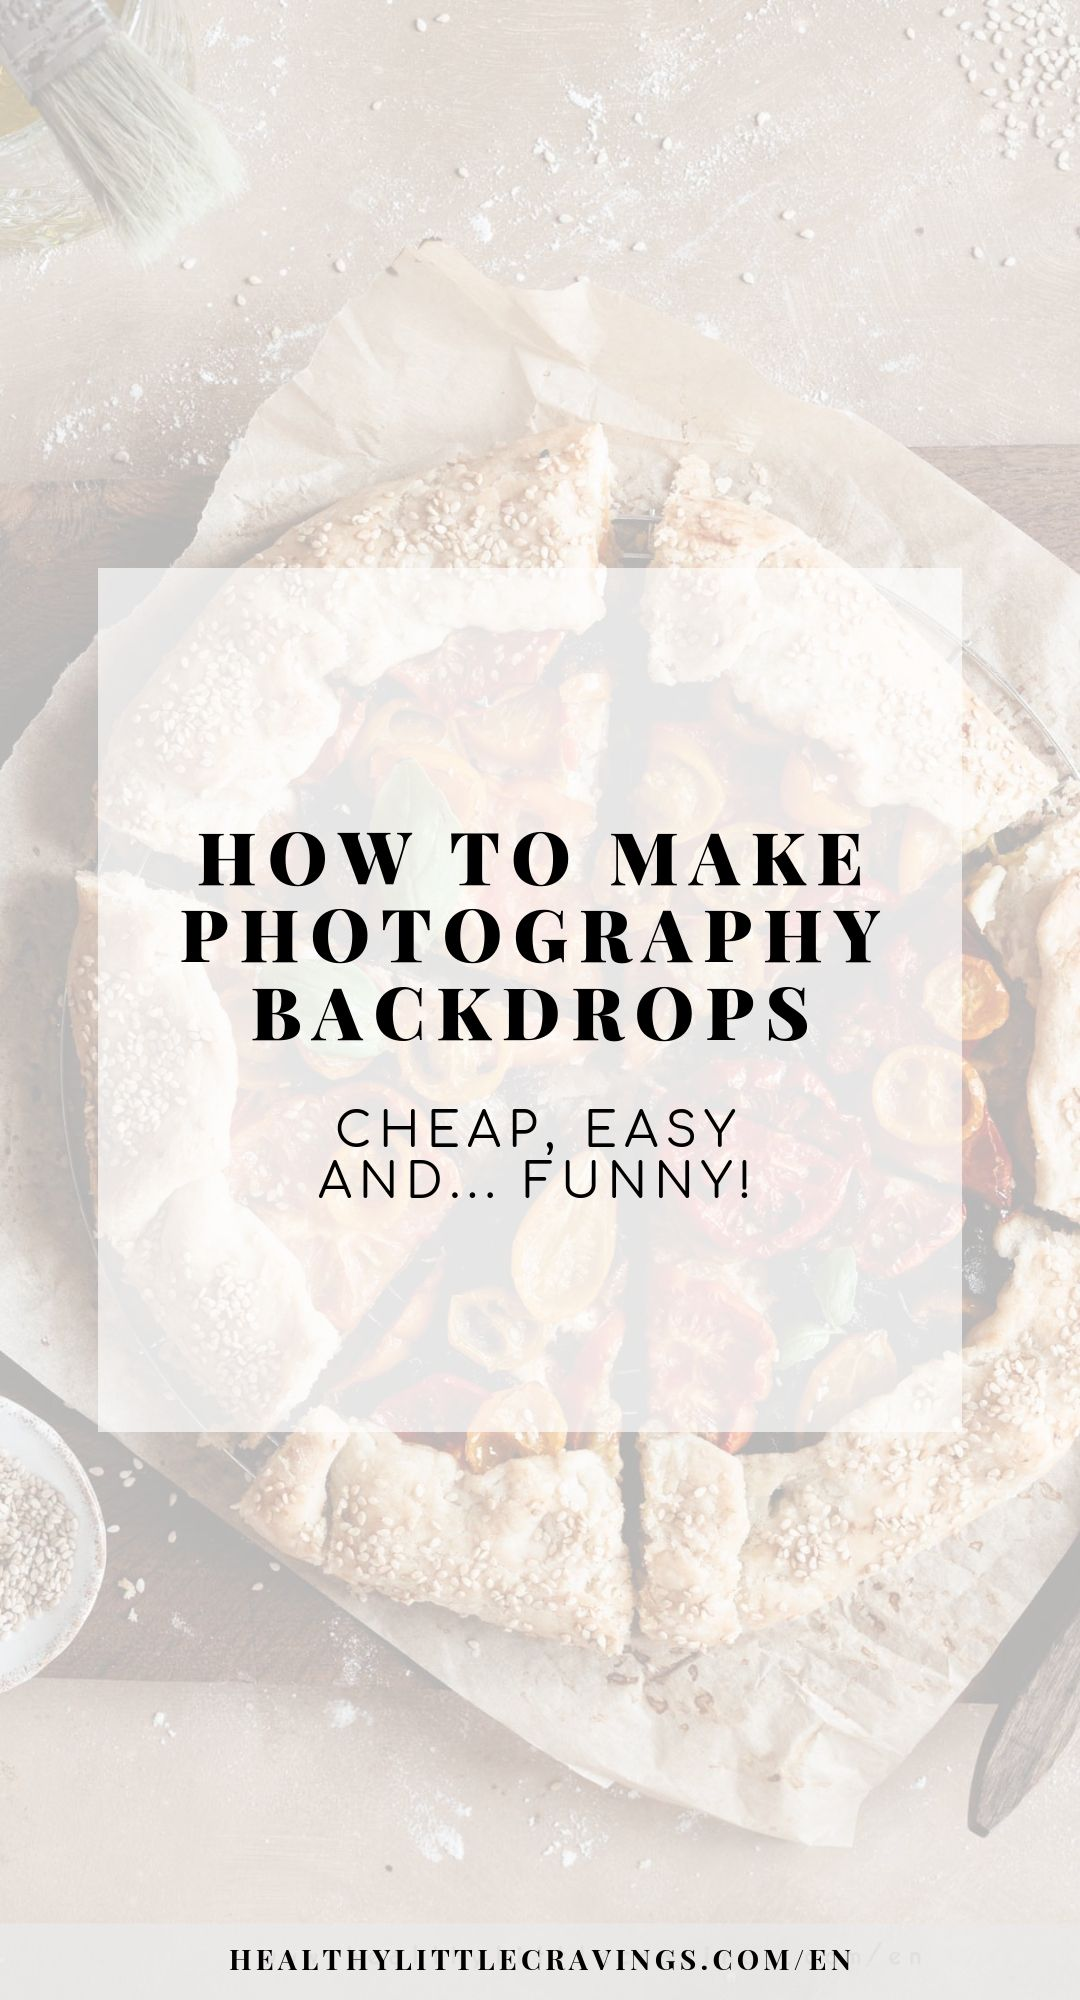 How to make photography backdrops easy and cheap